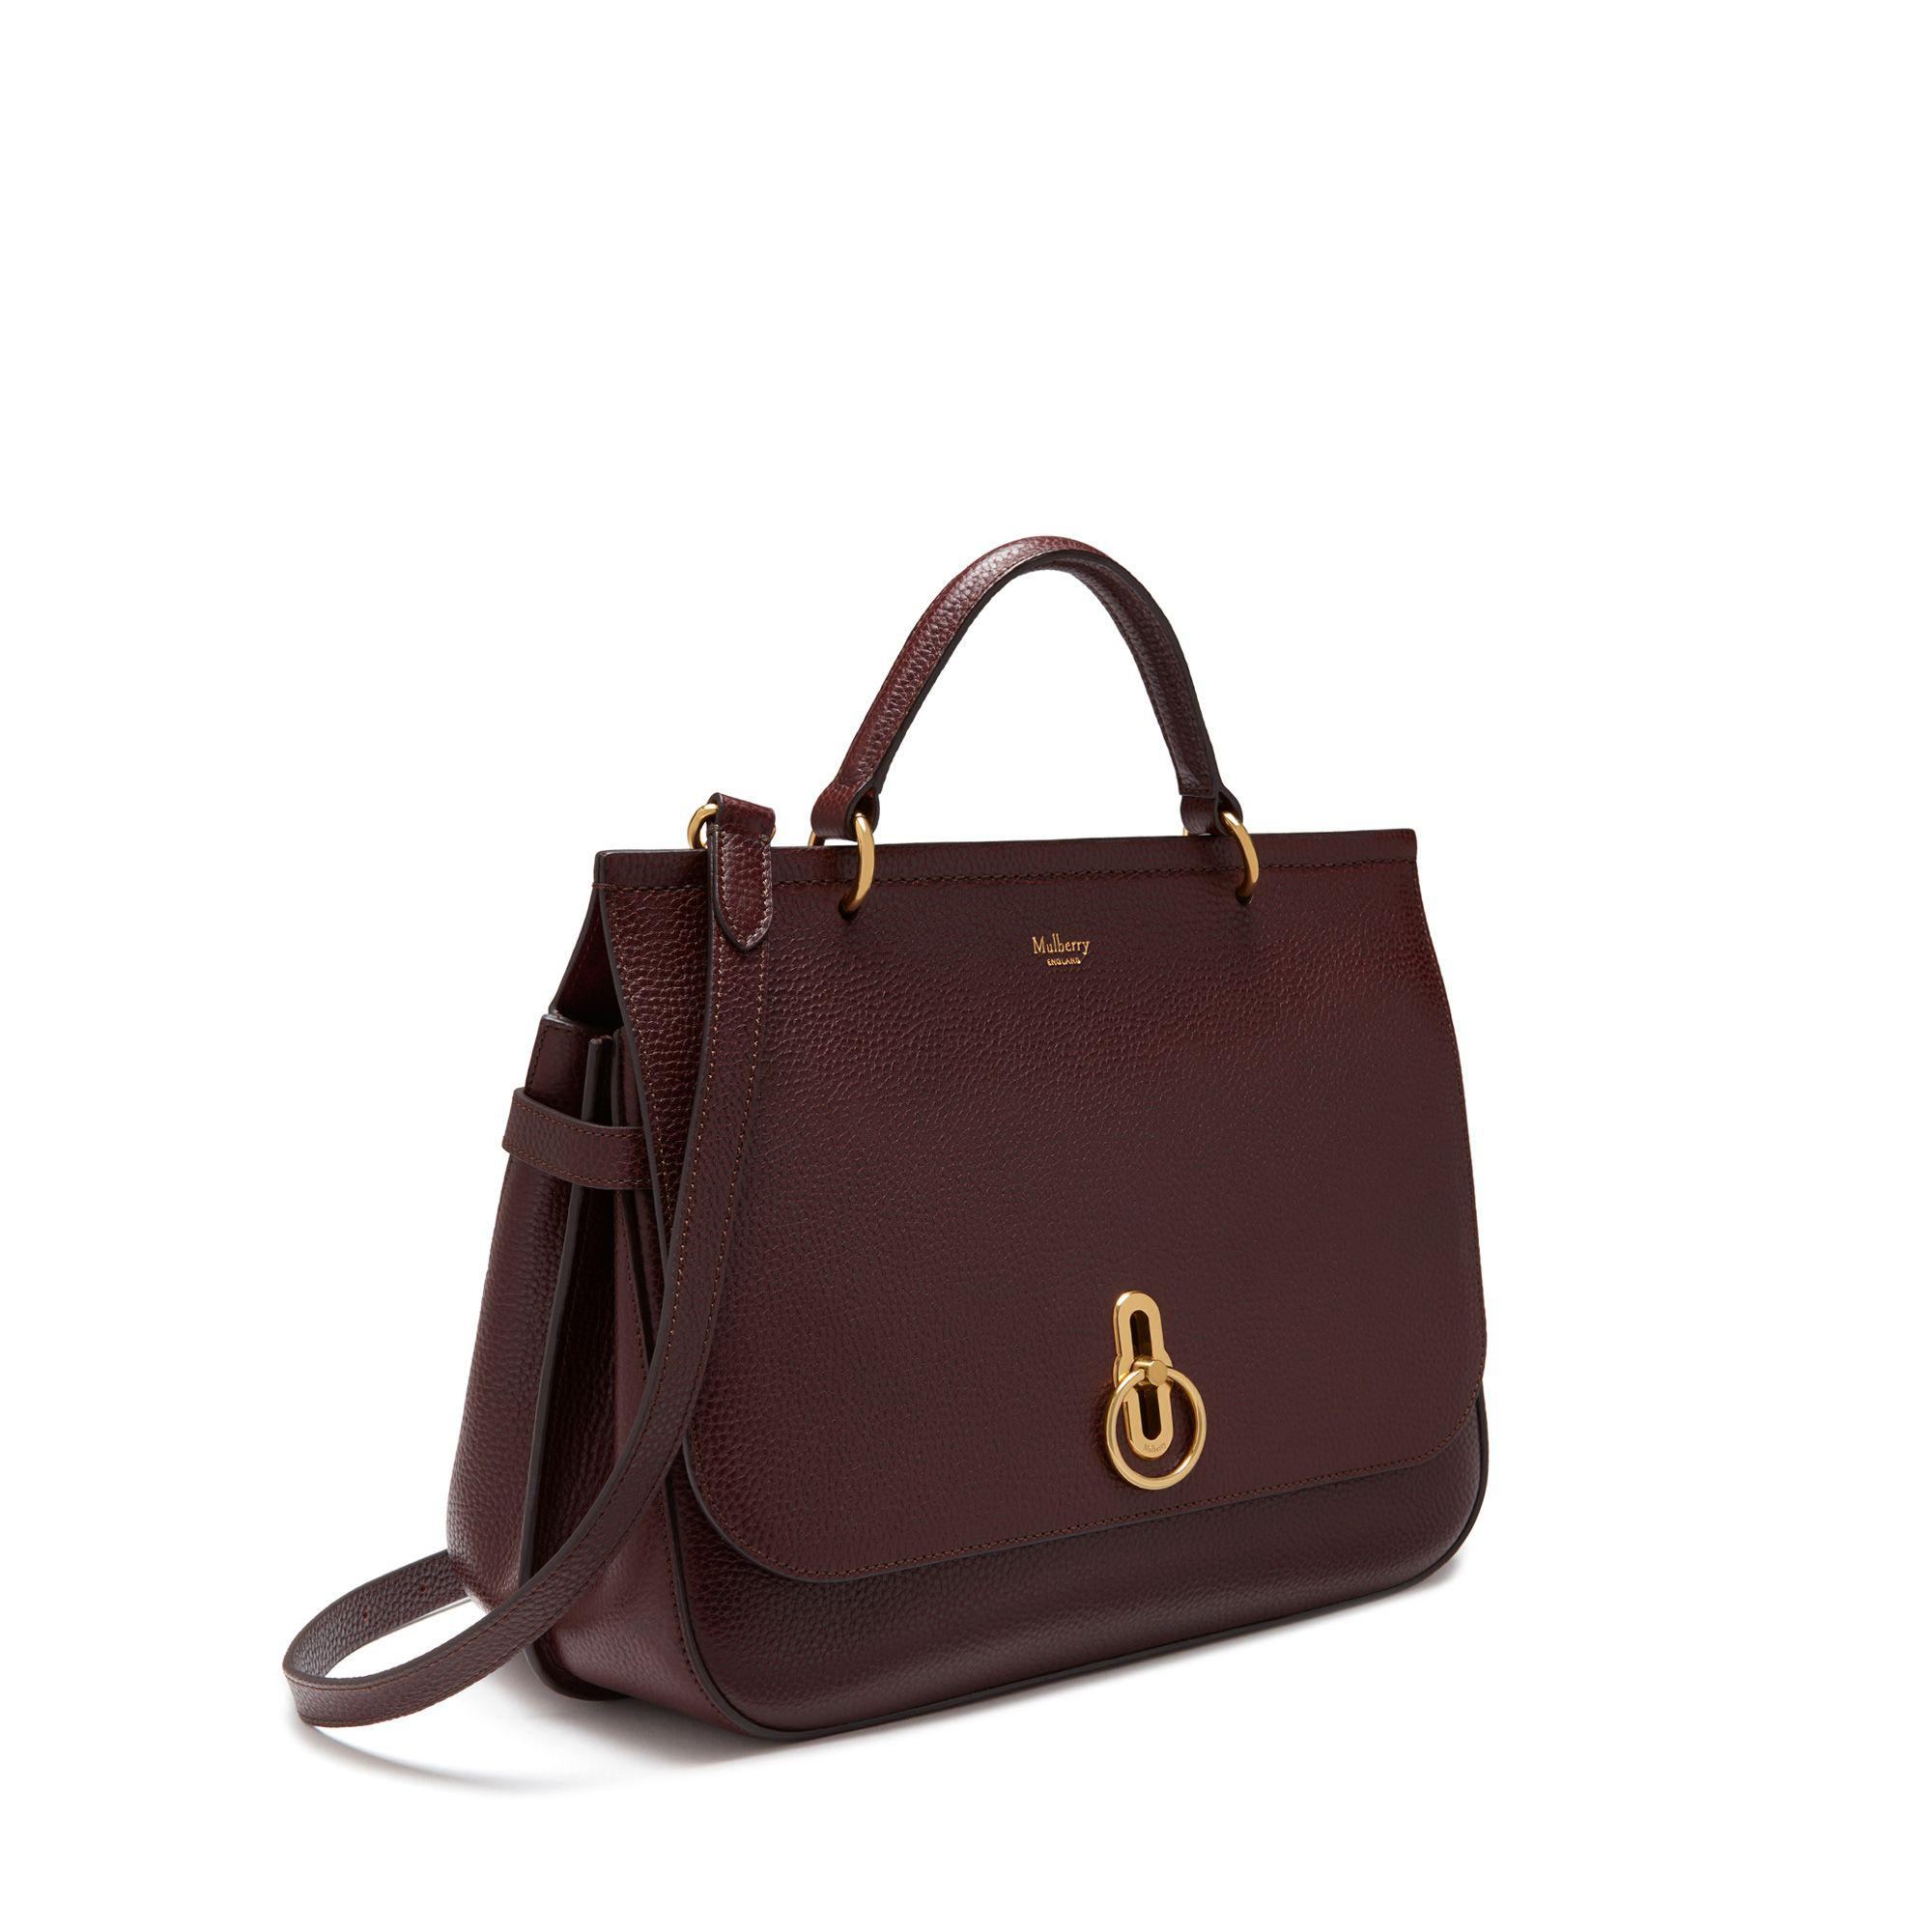 410a19a80c Mulberry - Multicolor Amberley In Oxblood Natural Grain Leather - Lyst.  View fullscreen